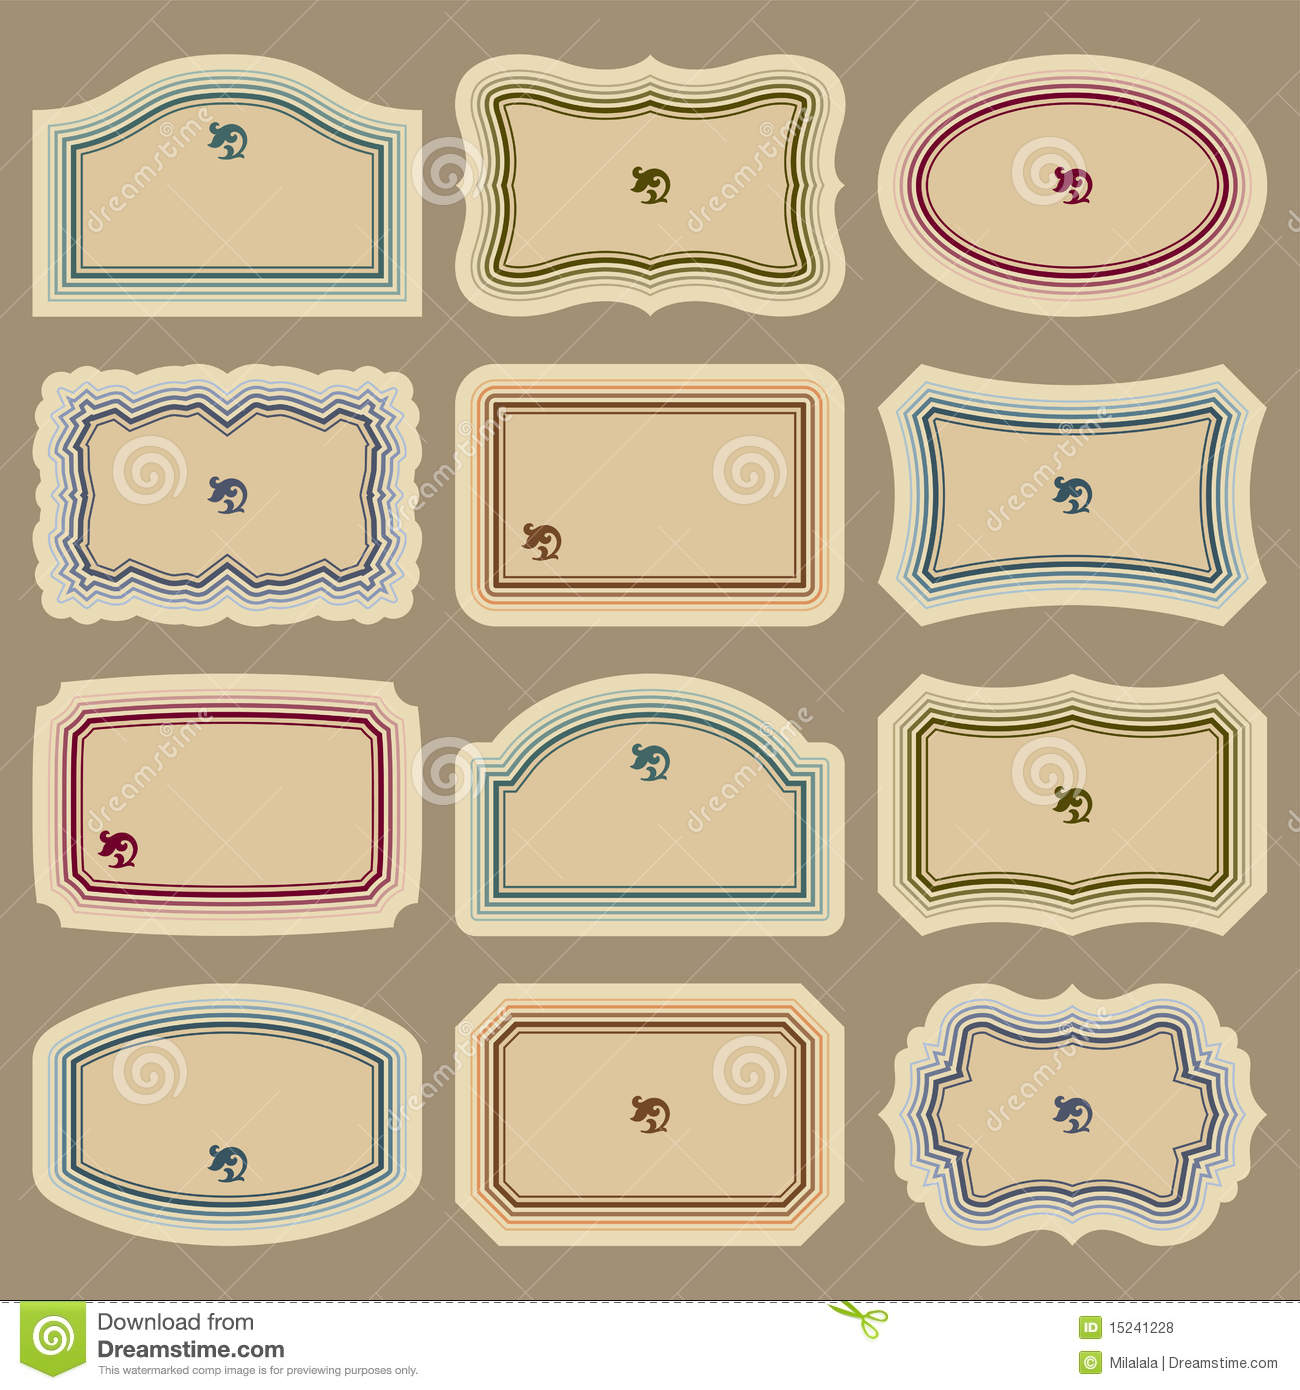 7 blank vintage label vector images free printable blank for Free downloadable labels template